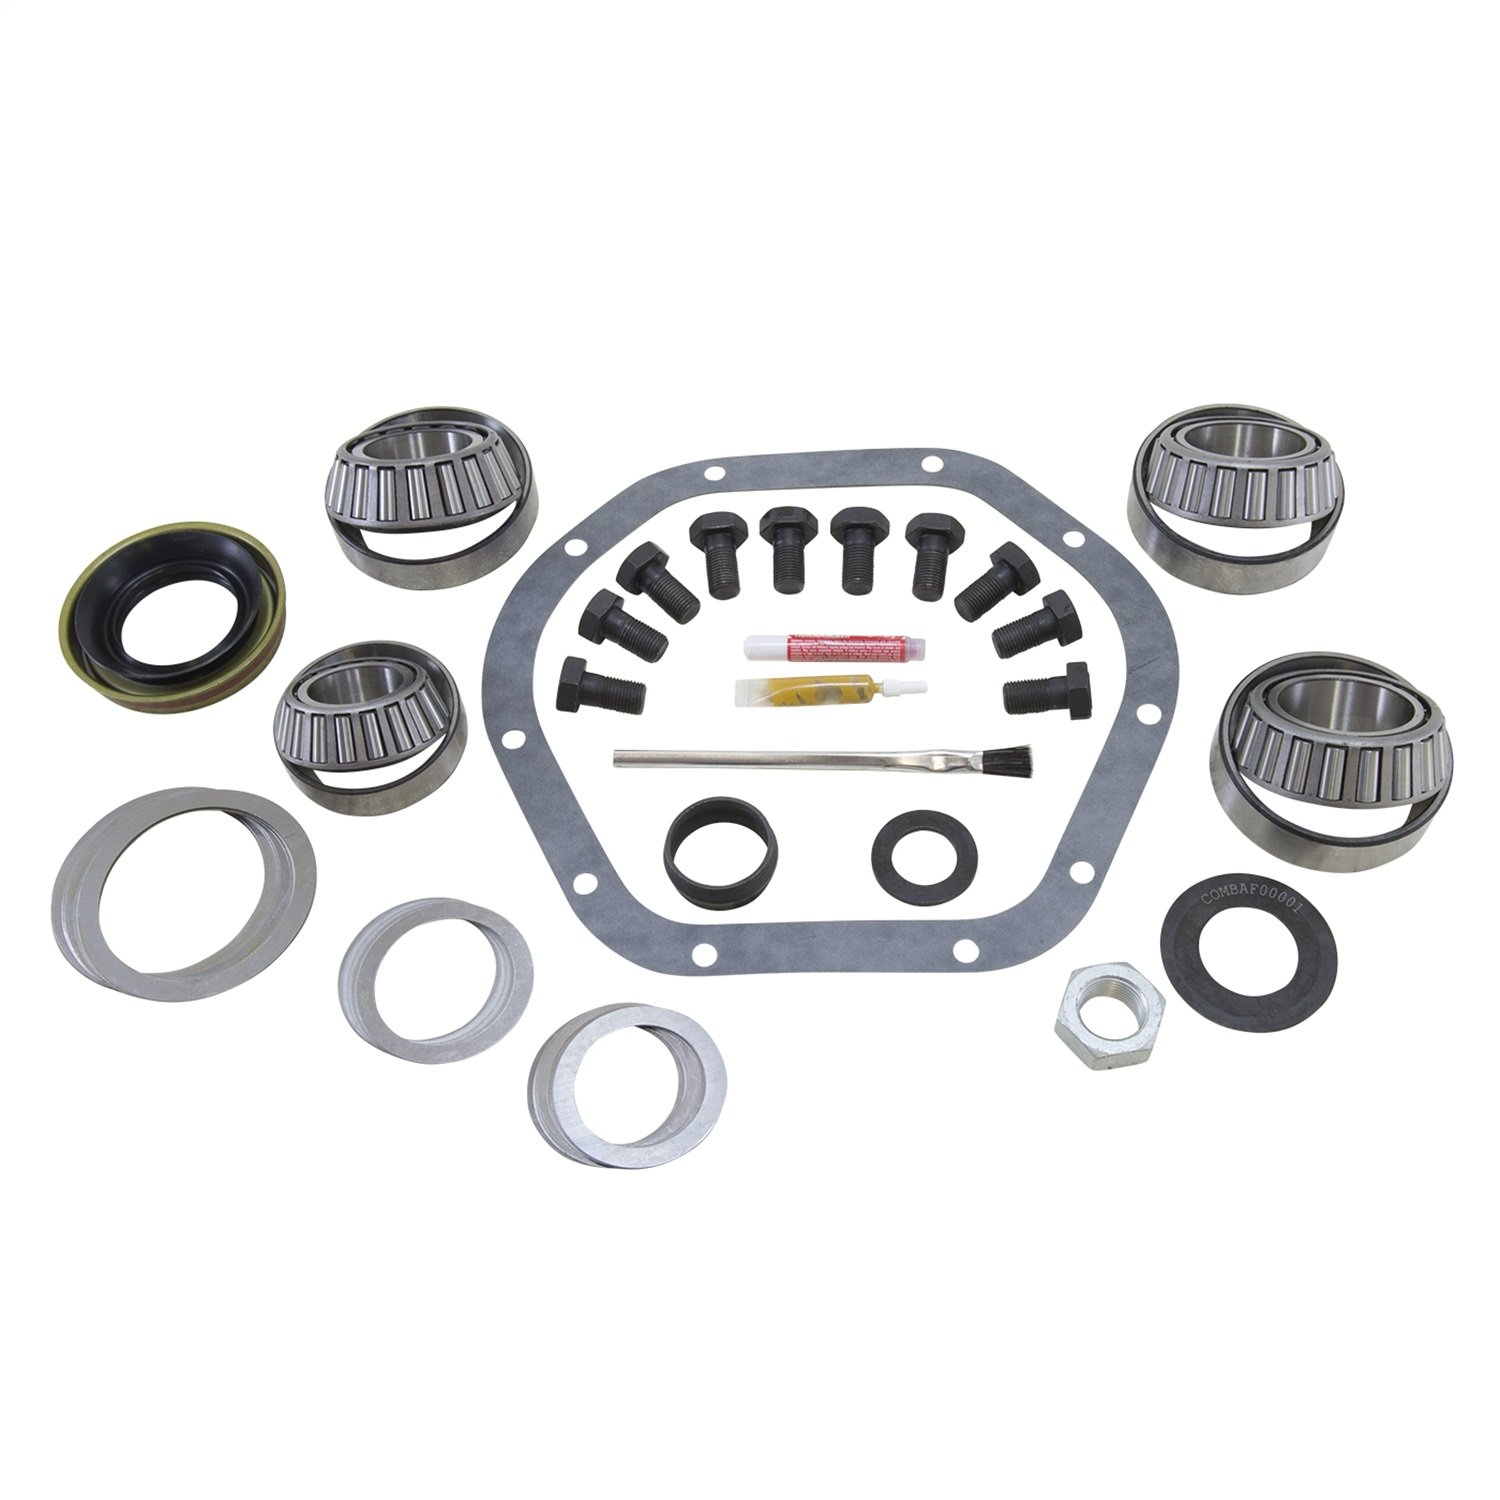 Yukon YKD44-REAR Master Overhaul Kit for Dana 44 Axle with 30 Spline Yukon Gear YK D44-REAR